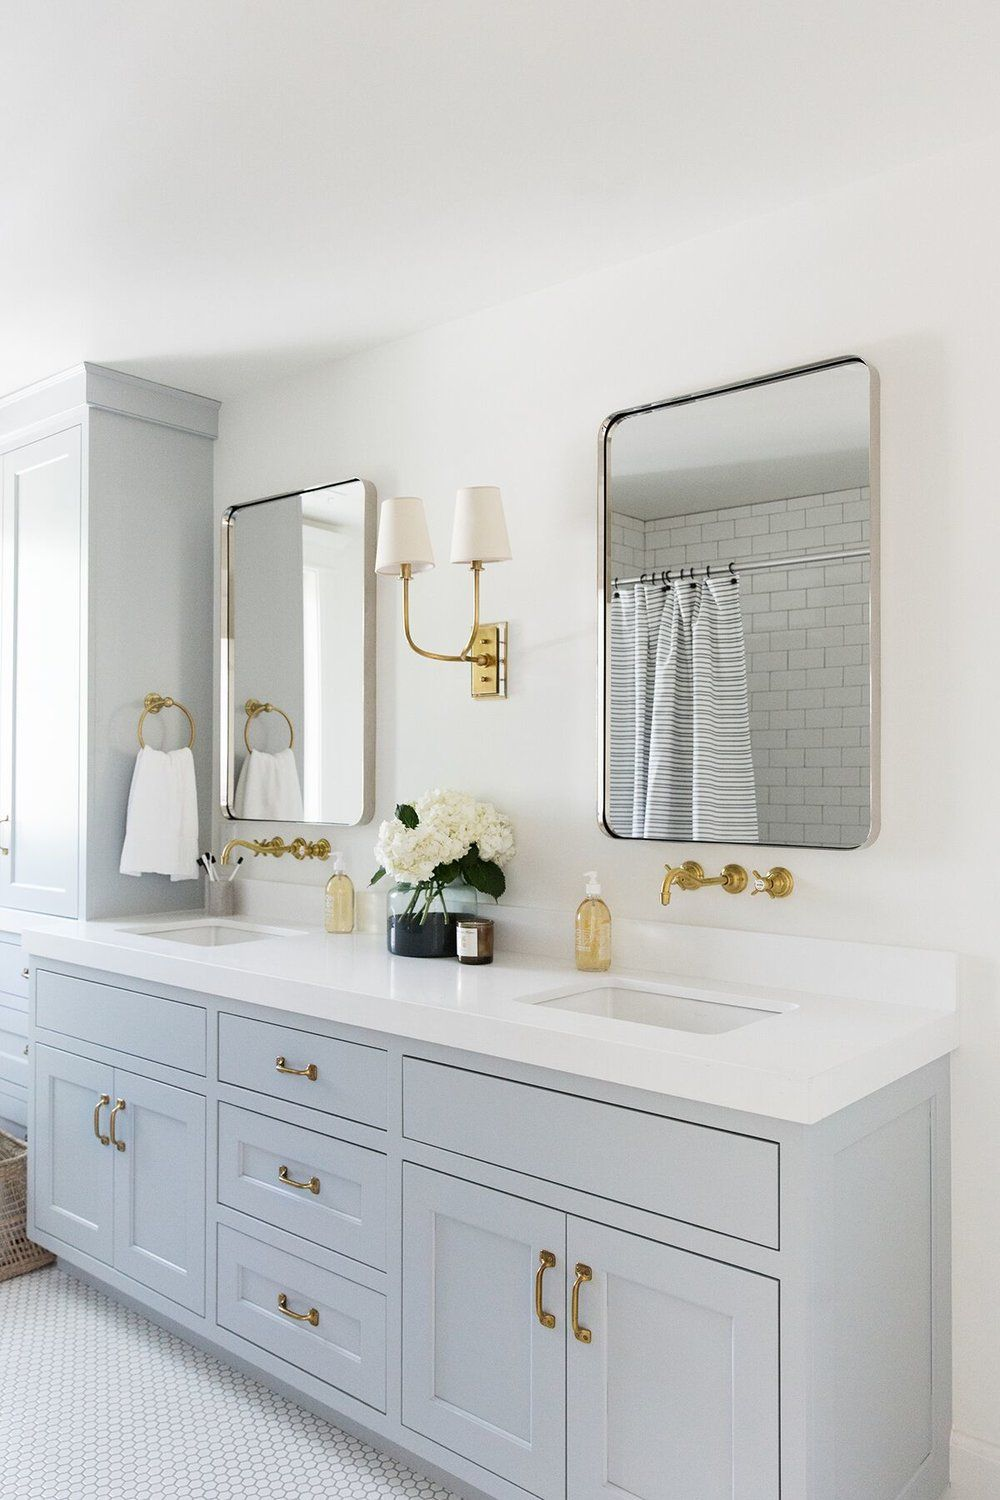 Pin By Kathy Kuo On Bath Bathroom Remodel Master Girls Bathroom Bathrooms Remodel